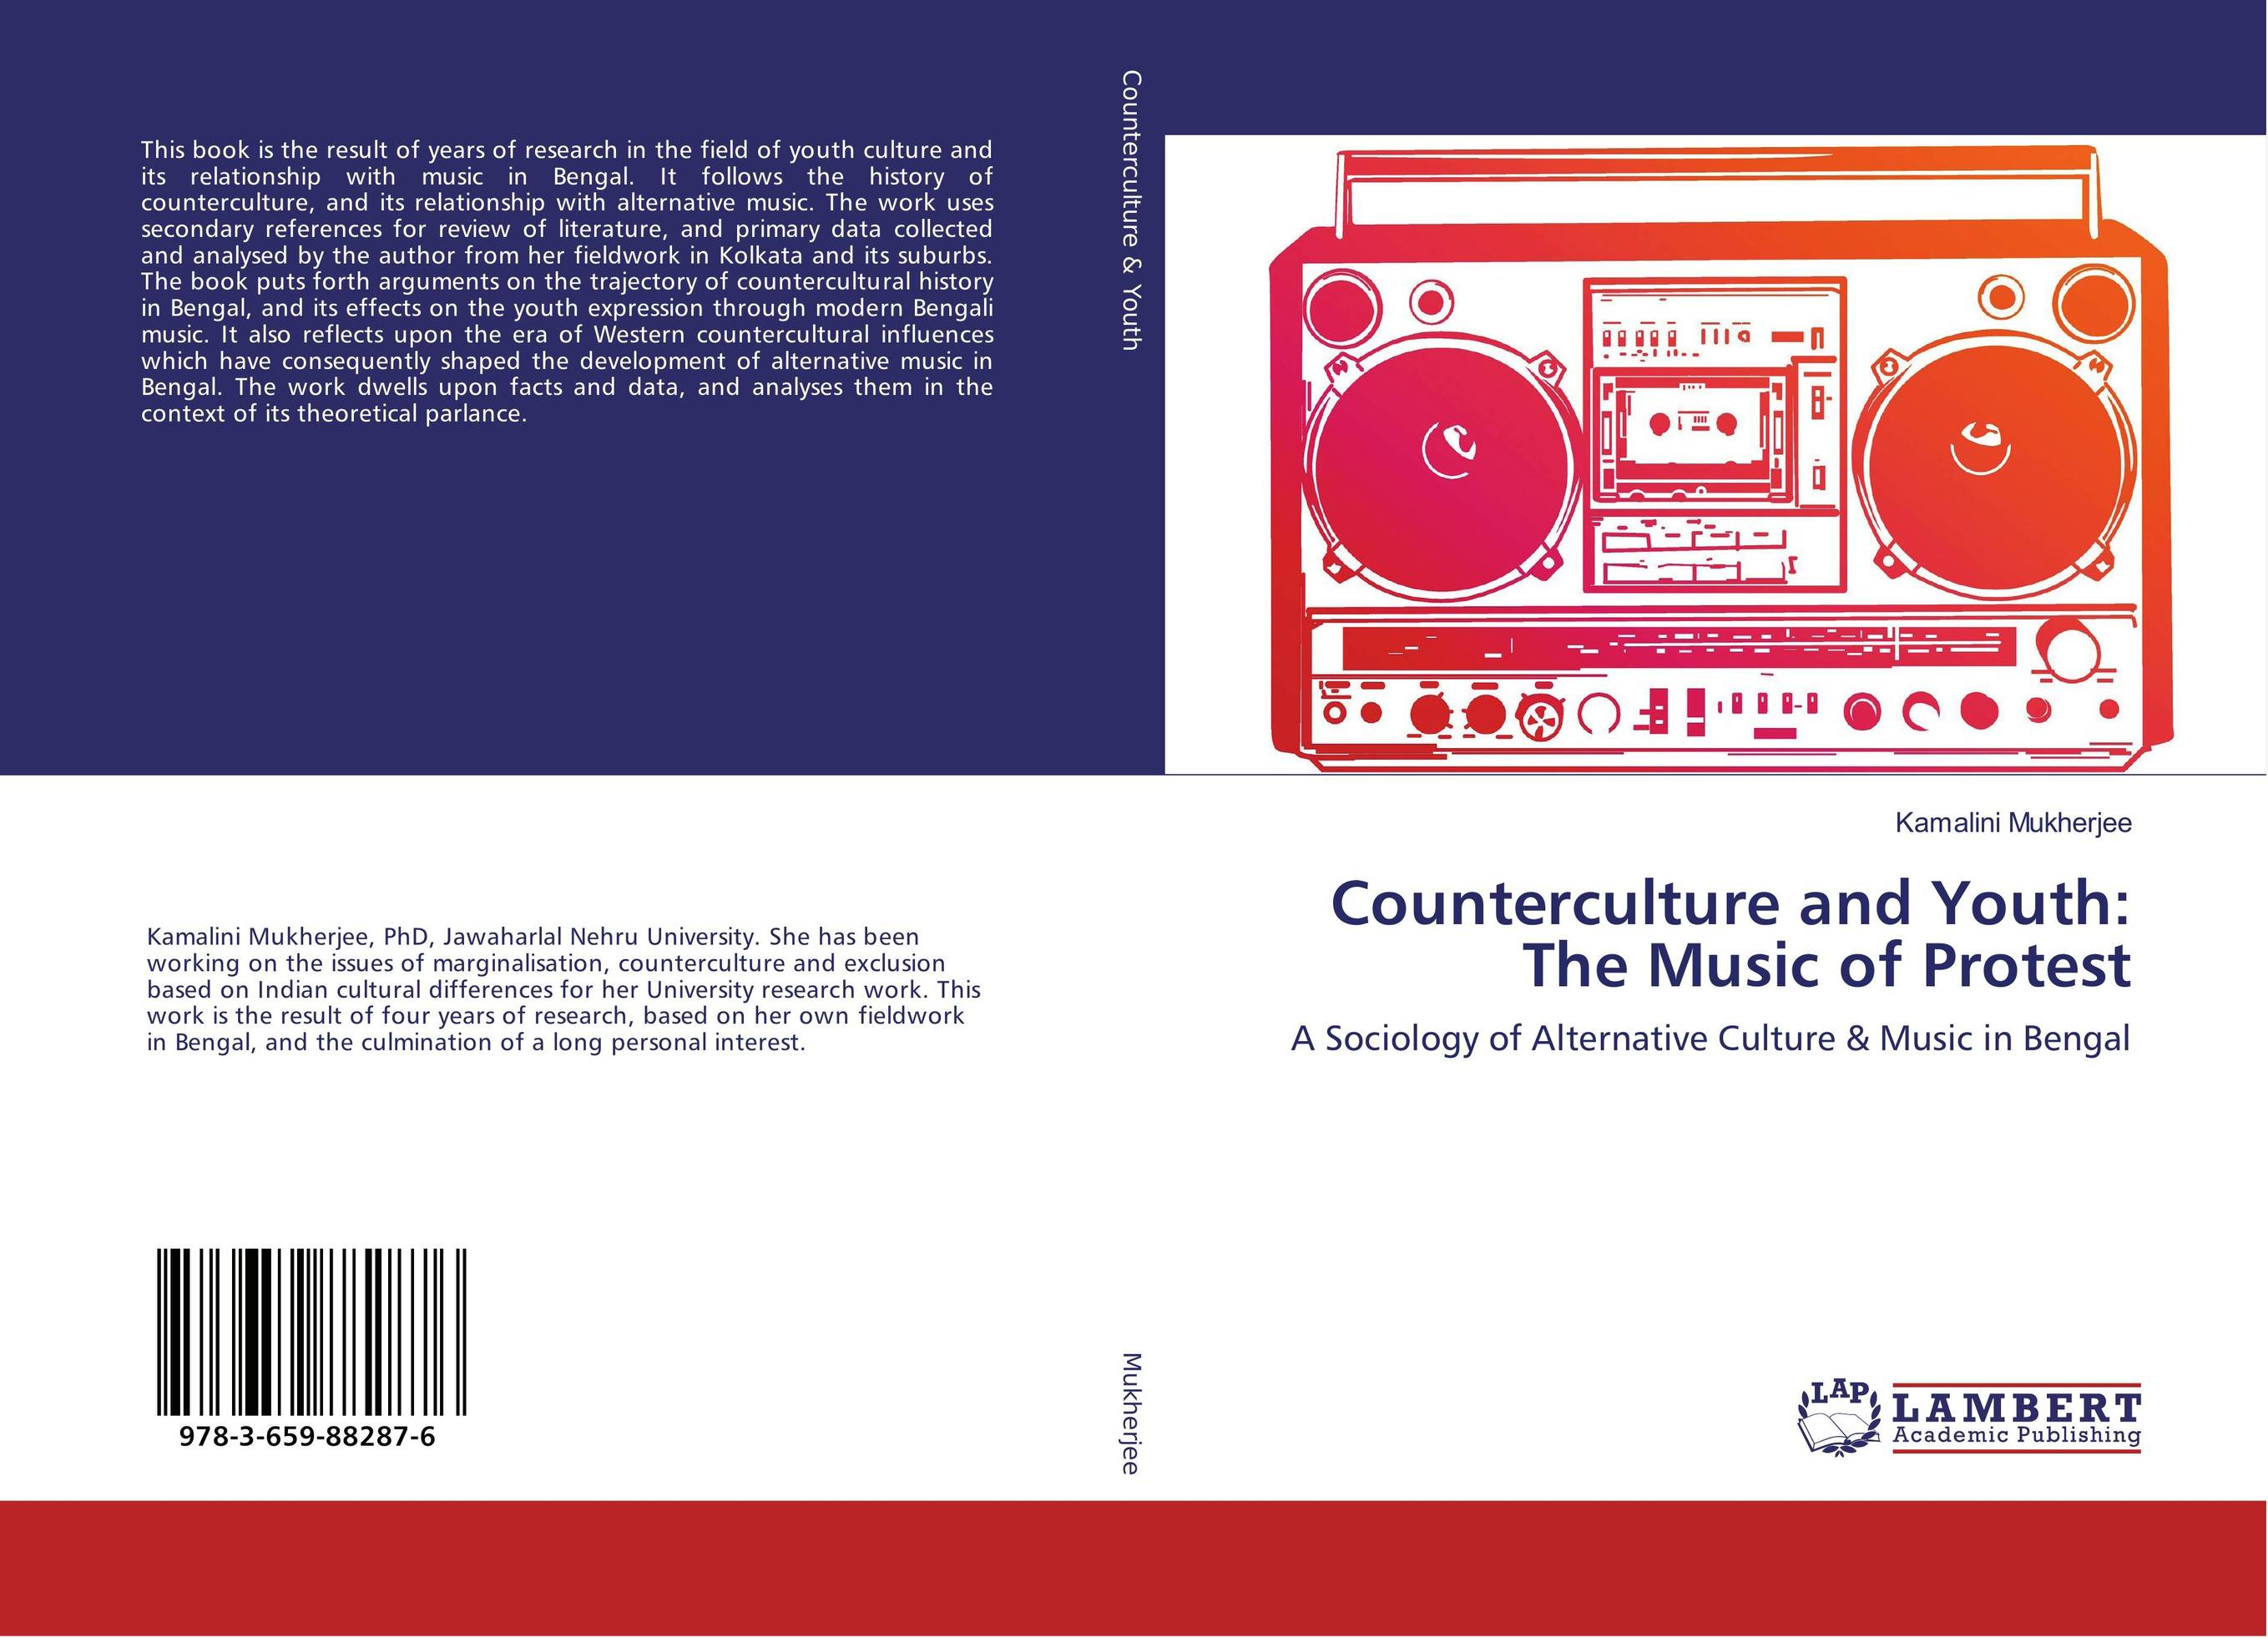 Counterculture and Youth: The Music of Protest a history of western music 4e ise paper